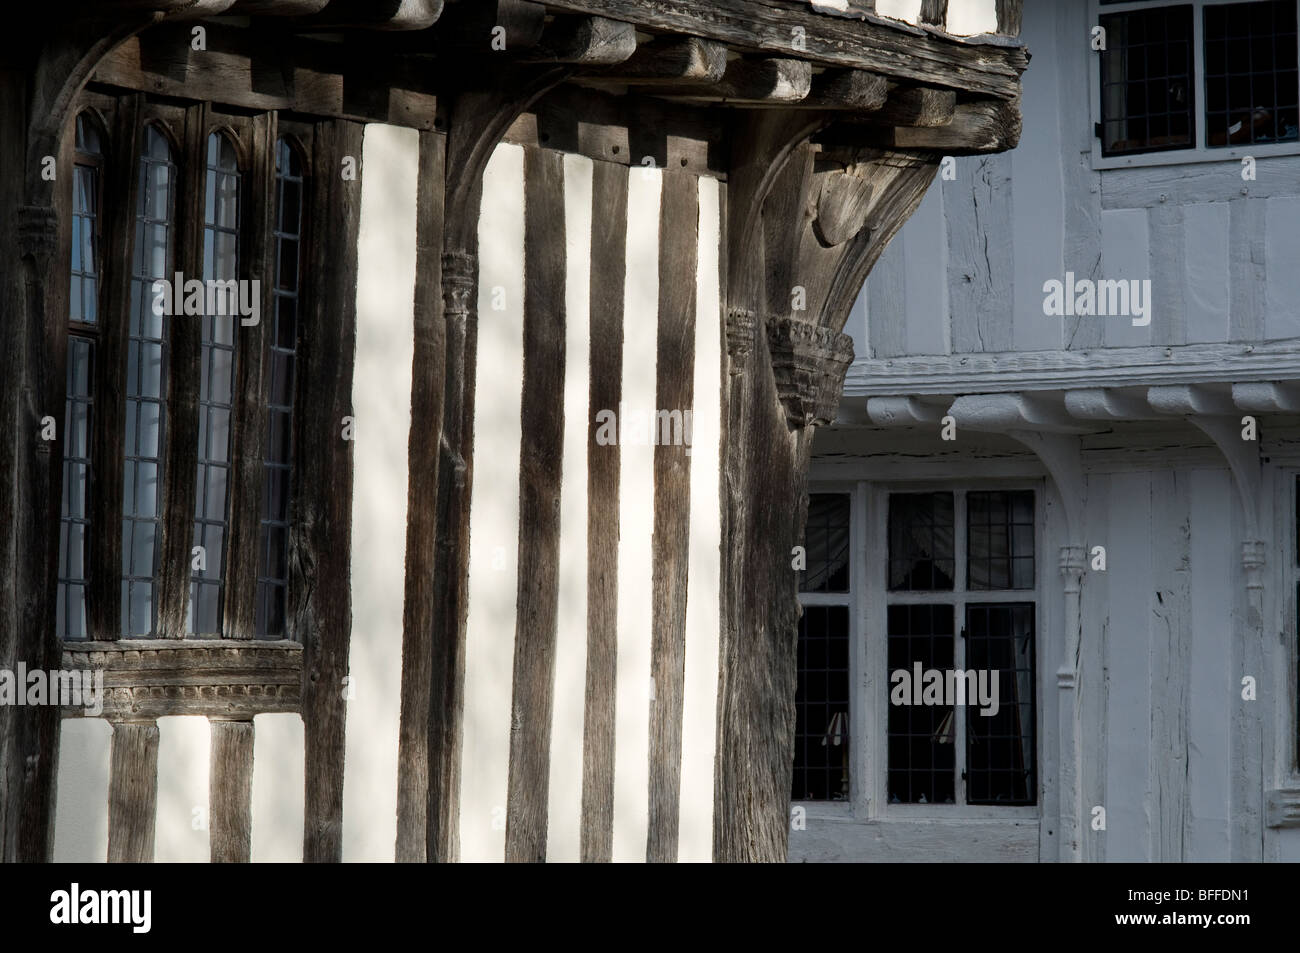 Timber-framed wattled walls of houses in Lavenham, Suffolk, England. - Stock Image